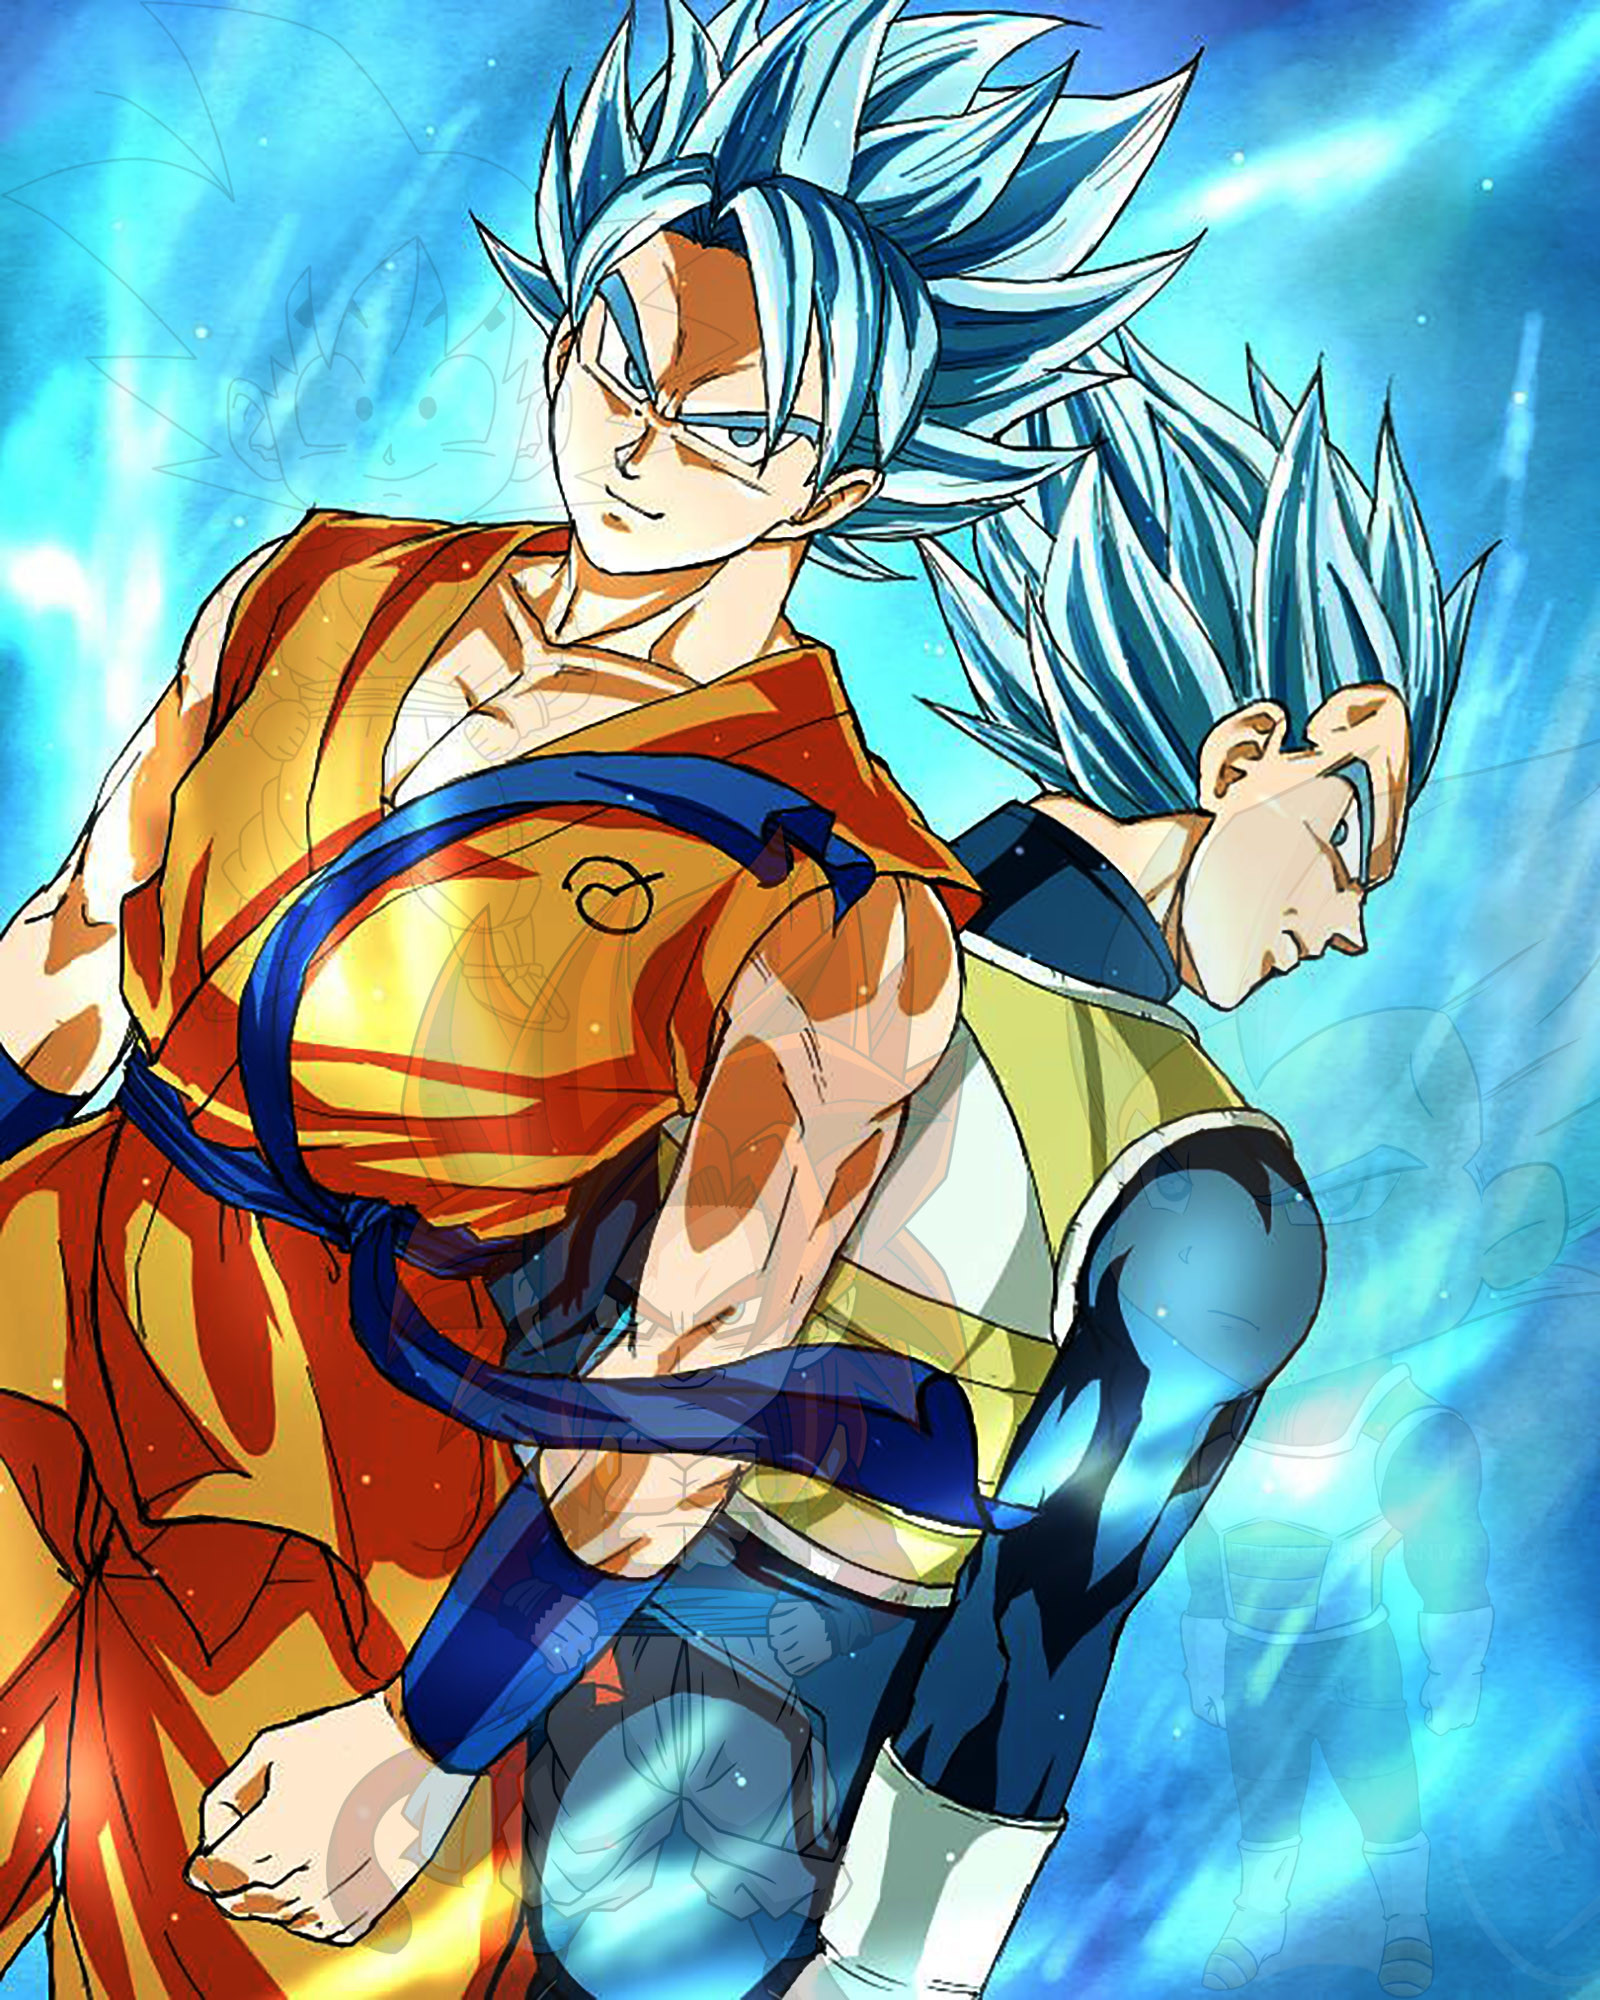 53 Trunks (Dragon Ball) HD Wallpapers | Backgrounds – Wallpaper Abyss